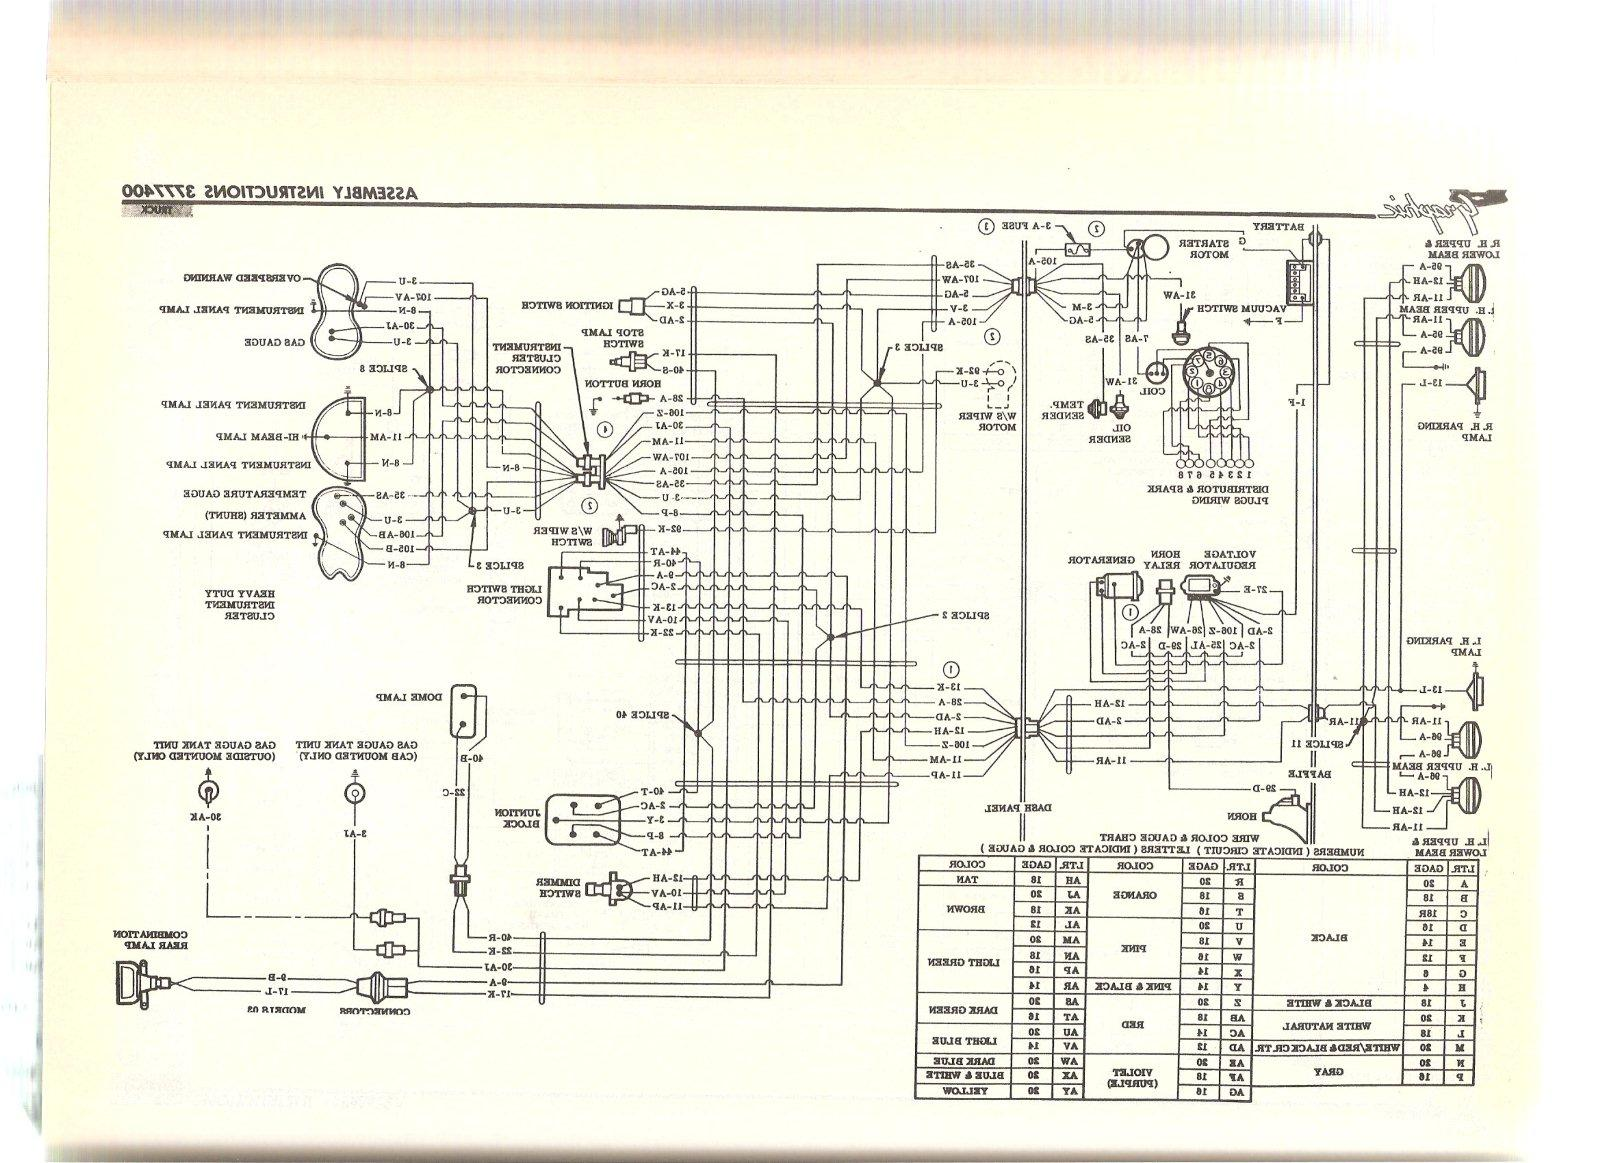 1967 Cadillac Alternator Wiring Diagram Electrical Schematics Chrysler Diagrams Online Circuit U2022 Prestolite